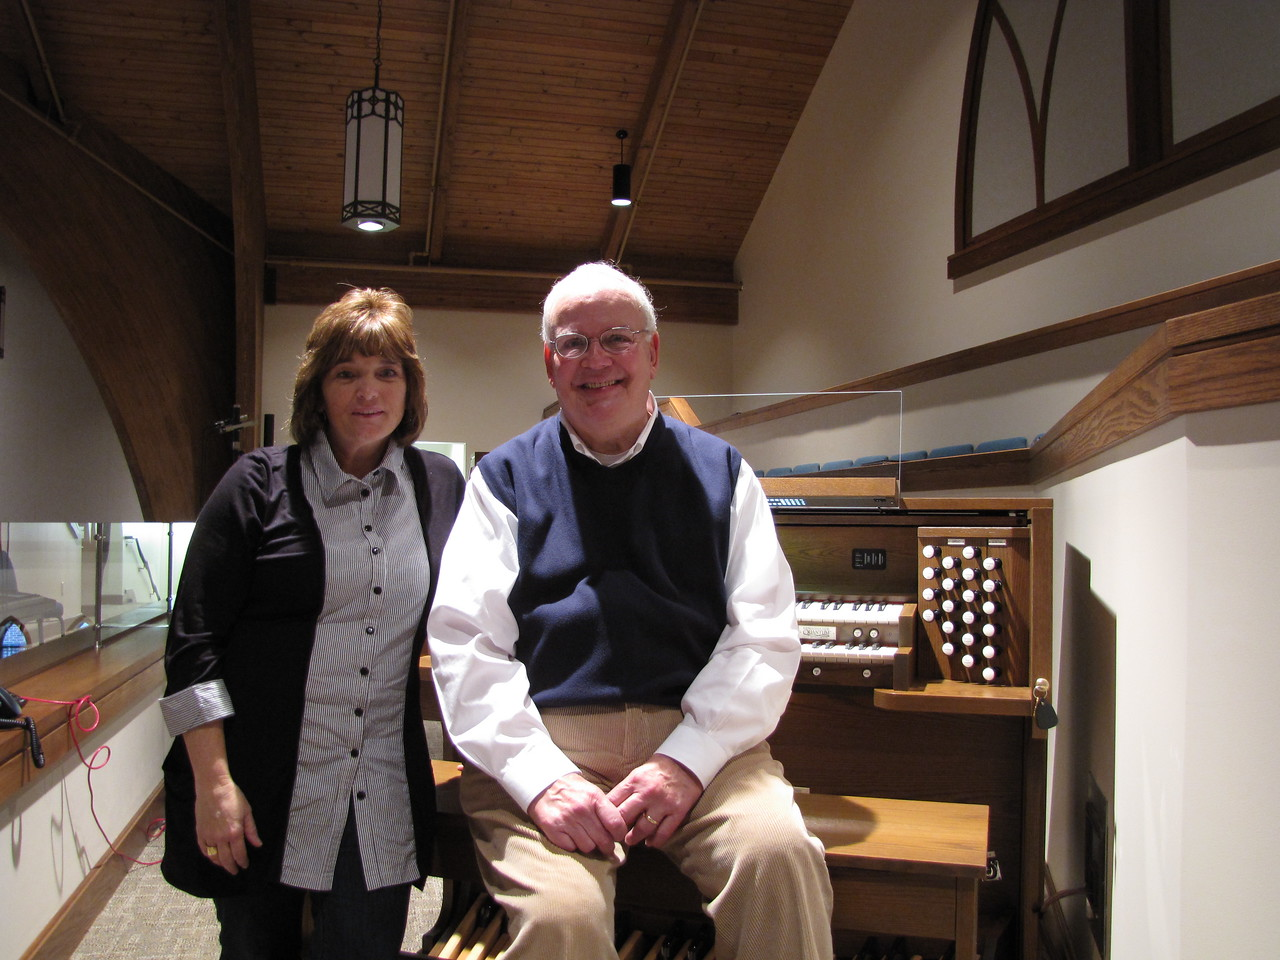 A happy organist and building committee chair...